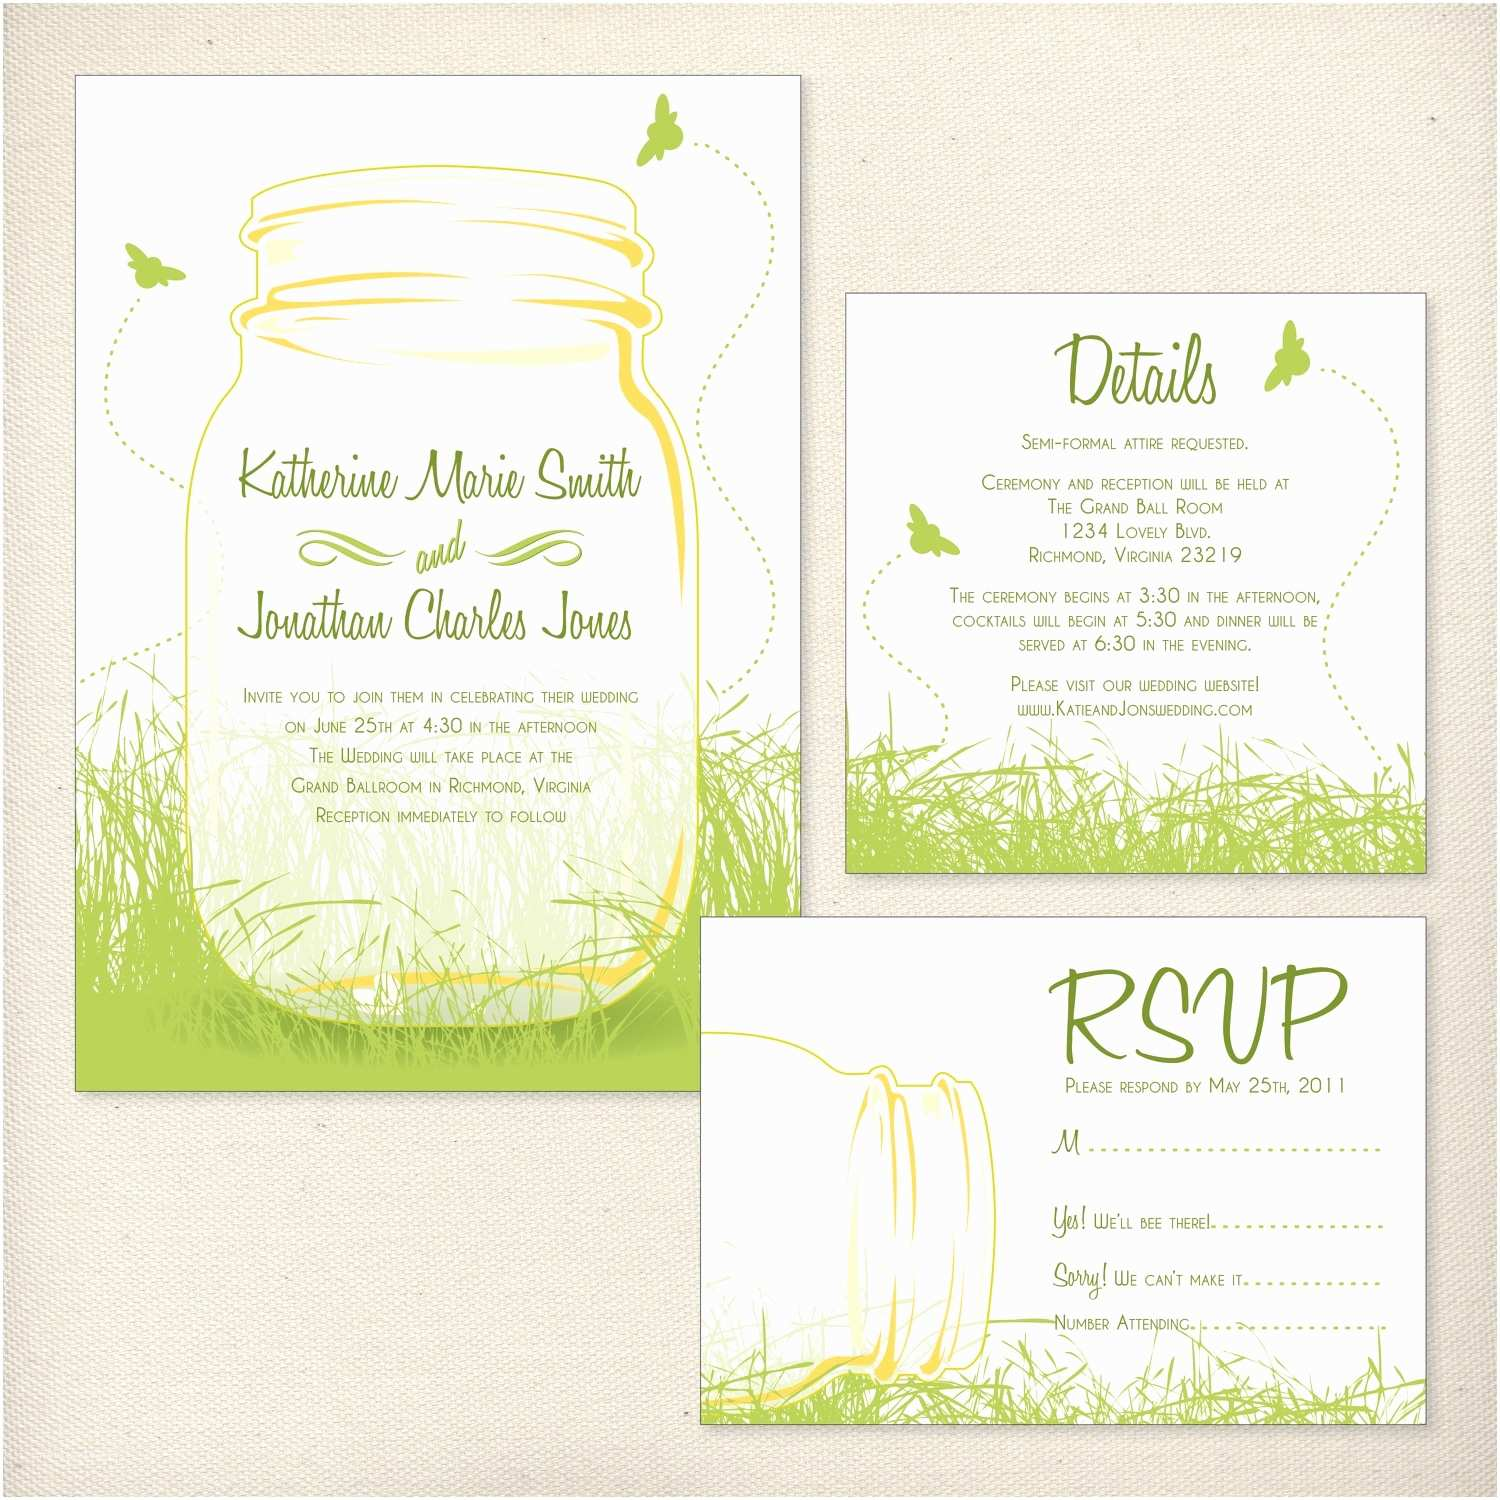 How To Print Out Wedding Invitations How To Make Wedding Invitations Costco Ideas With